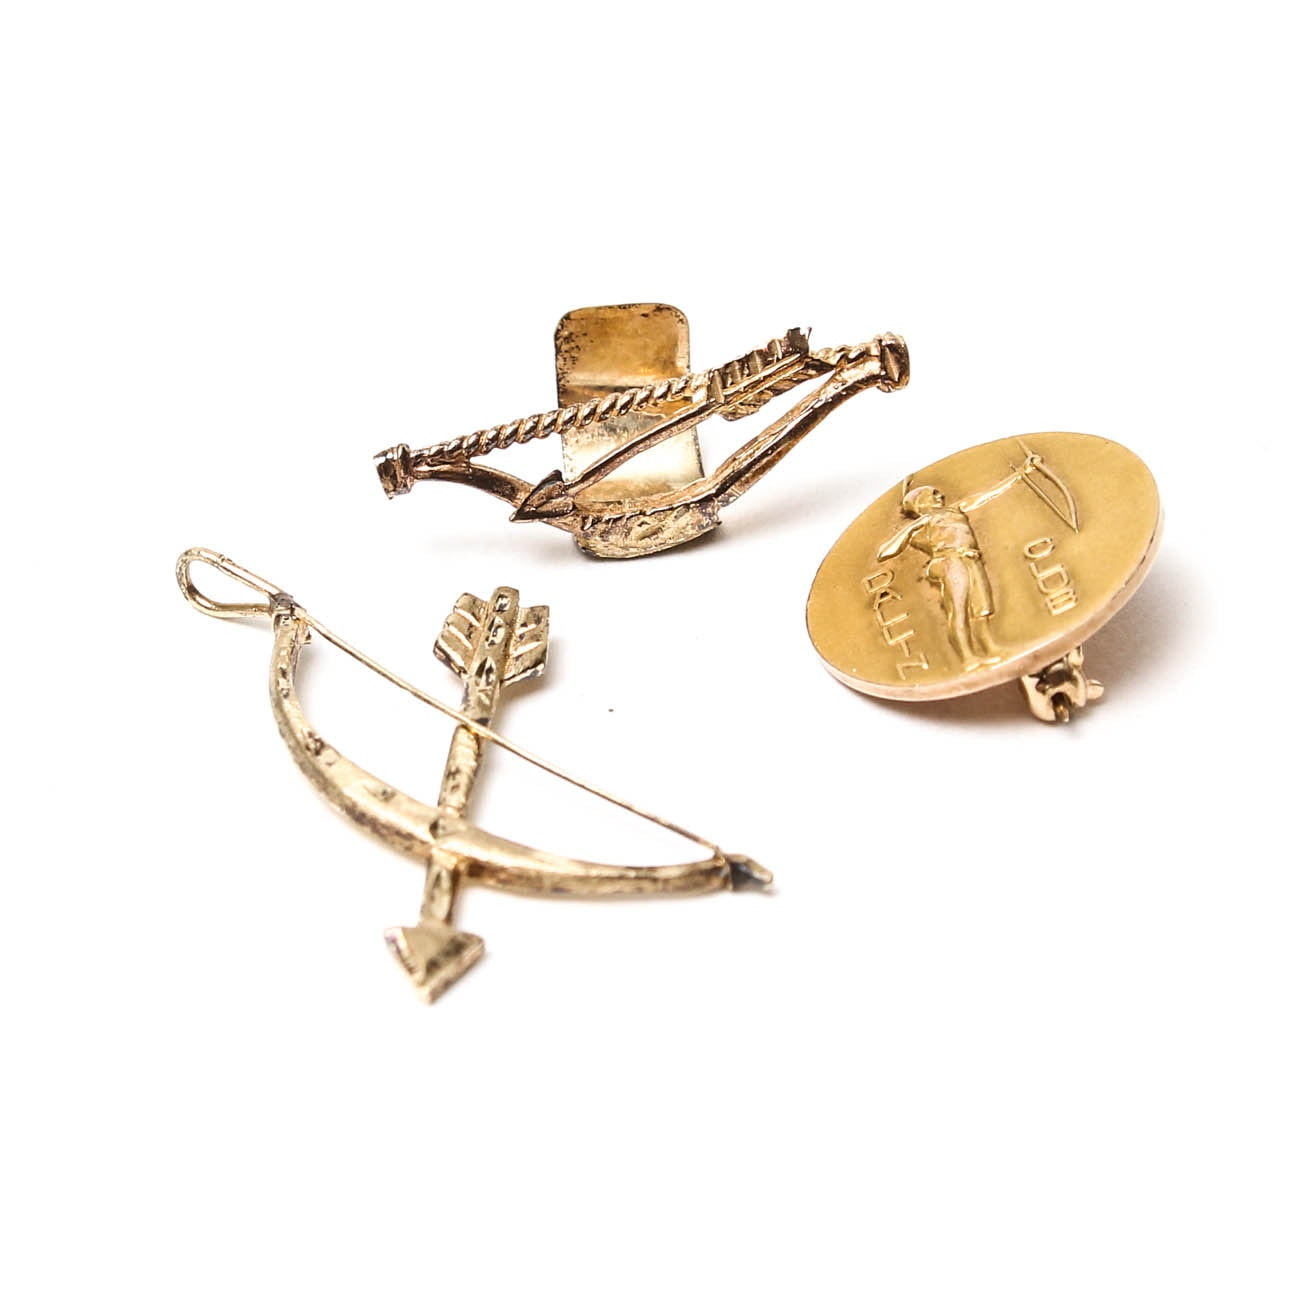 10K Yellow Gold Ear Cuff with Pendant and 14K Lapel Pin